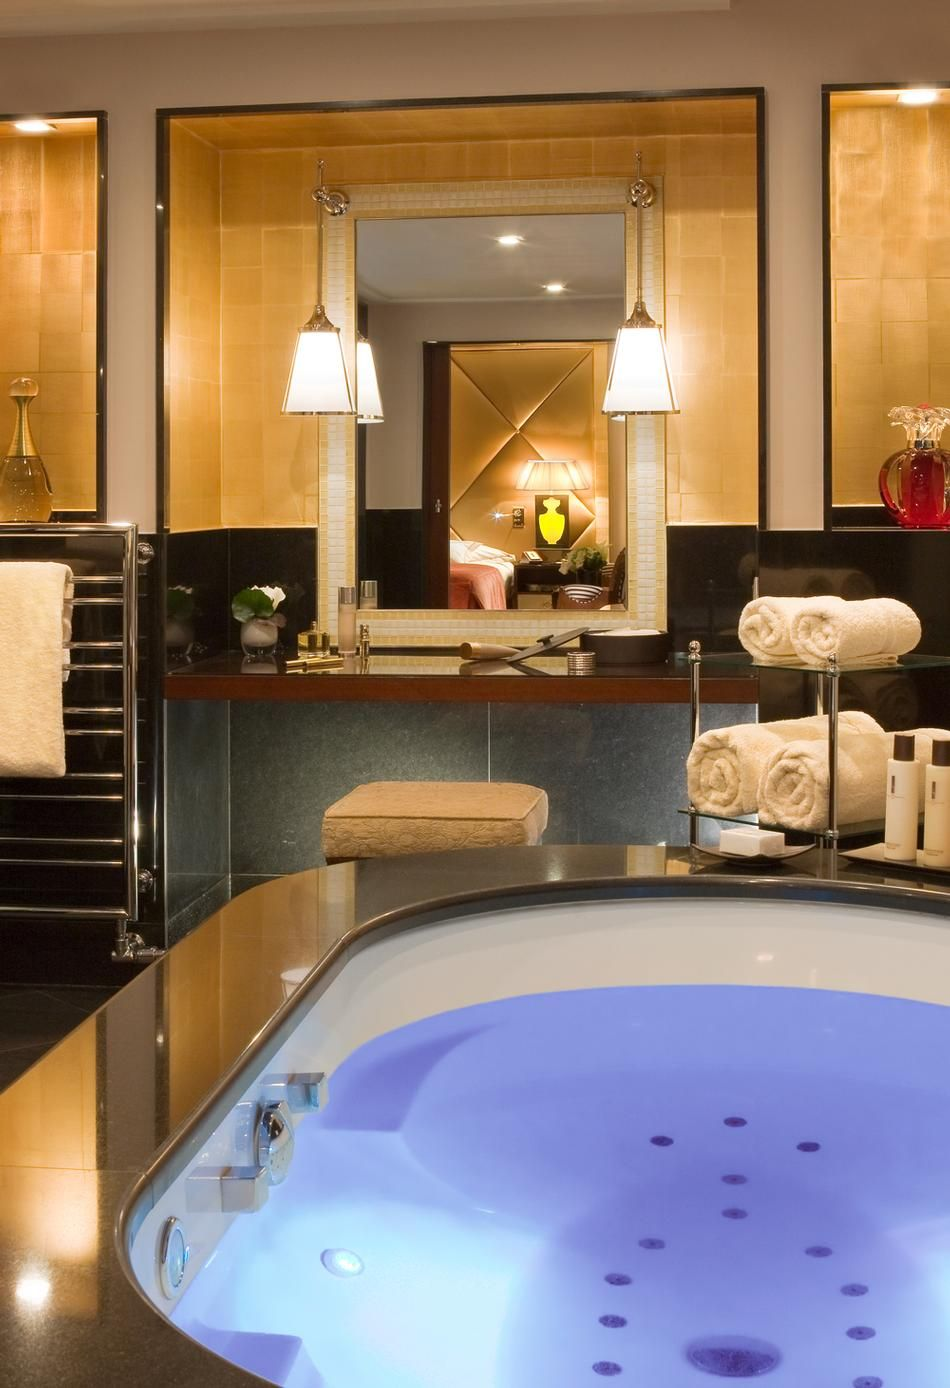 Honeymoon In Paris 7 Luxury Suites With A View Of The Eiffel Tower Amazing Bathrooms Luxury Suite Luxury Boutique Hotel